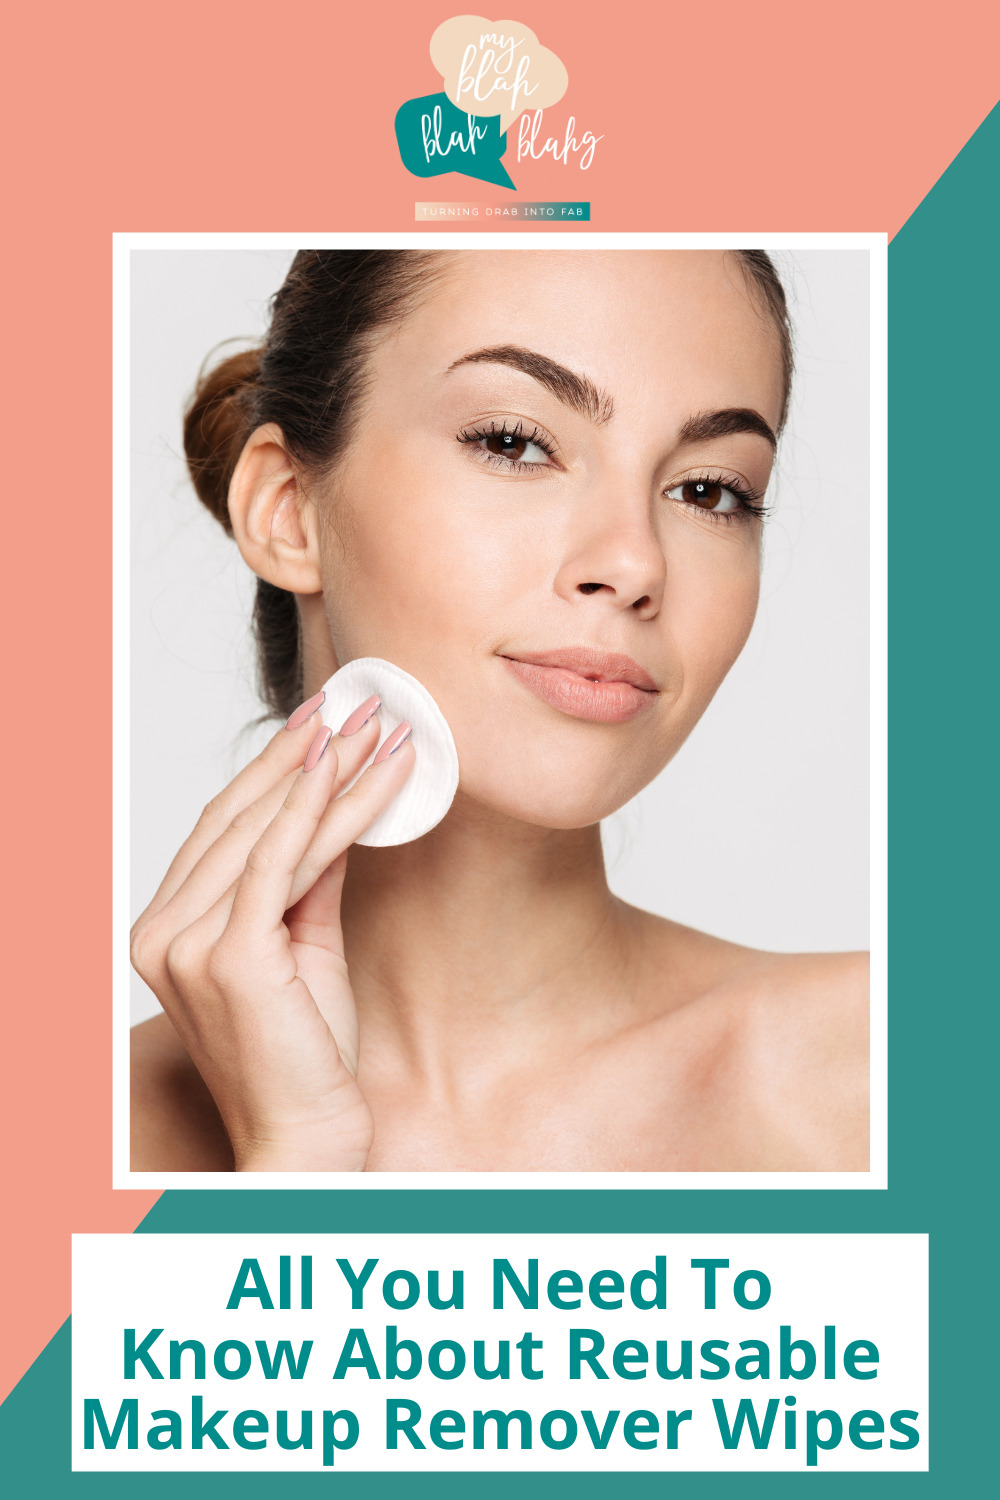 Myblahblahblahg.com has a little bit of everything. Get inspired with a range of tips. Stop worrying about the way you are treating yourself and the environment. Find out why you should make the switch to reusable makeup wipes now!